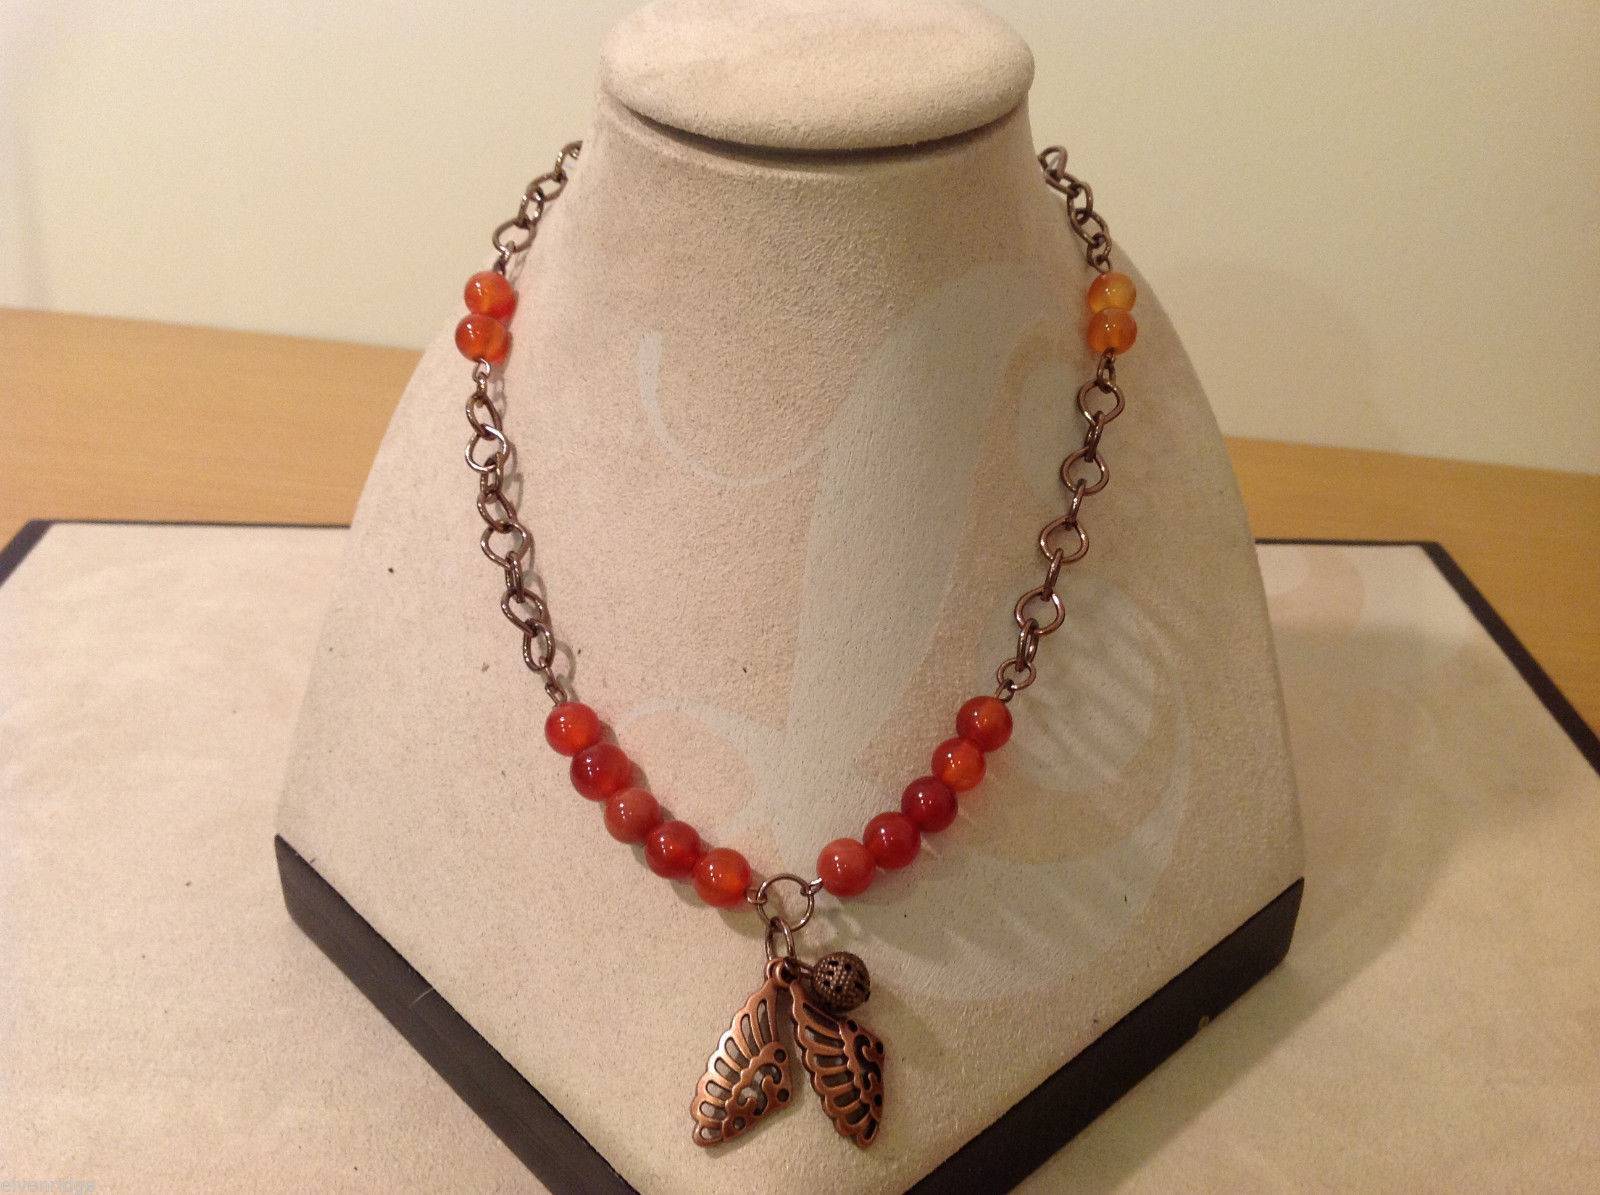 Vintage Copper Necklace Angel wings charms Red Yellow Beads Adjustable length